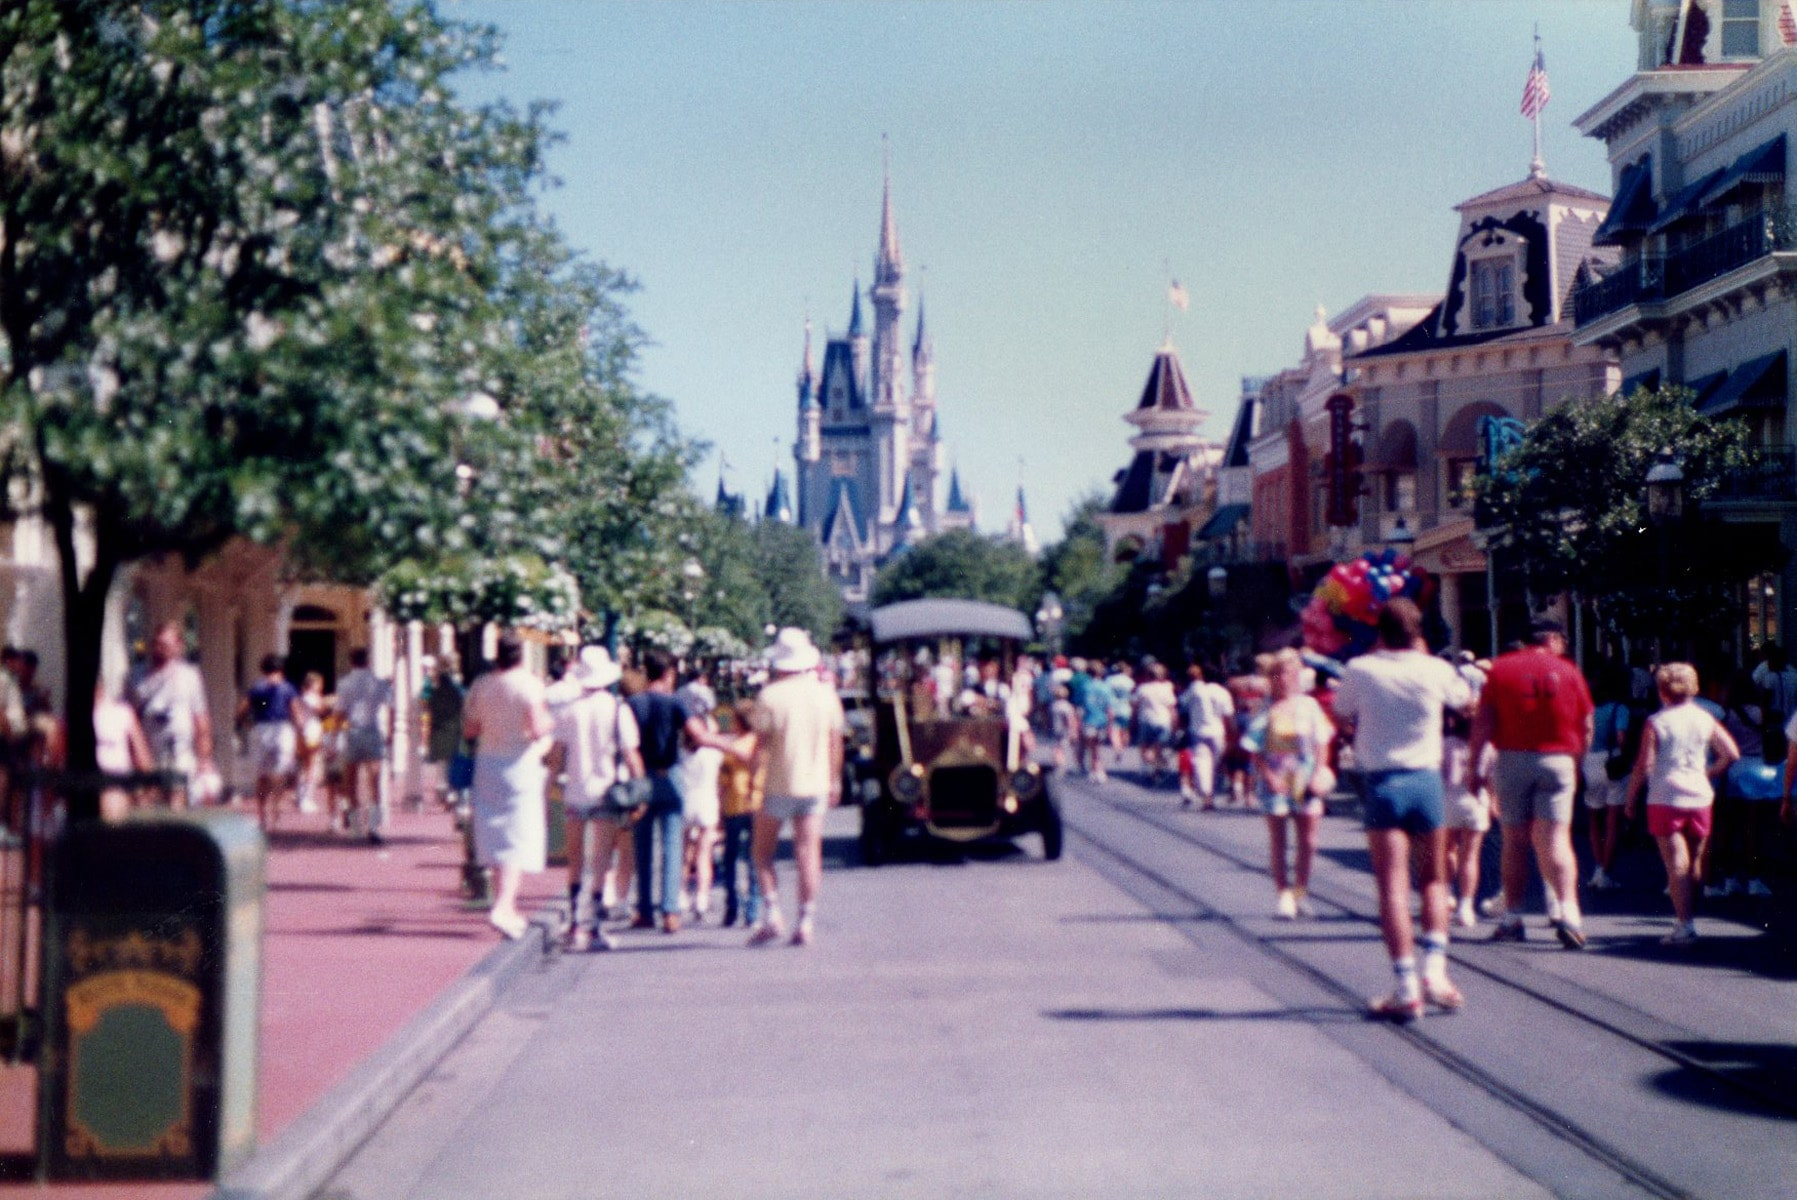 Le parc d'attractions magic kingdom à Disney à oRLANDO dans les années 80